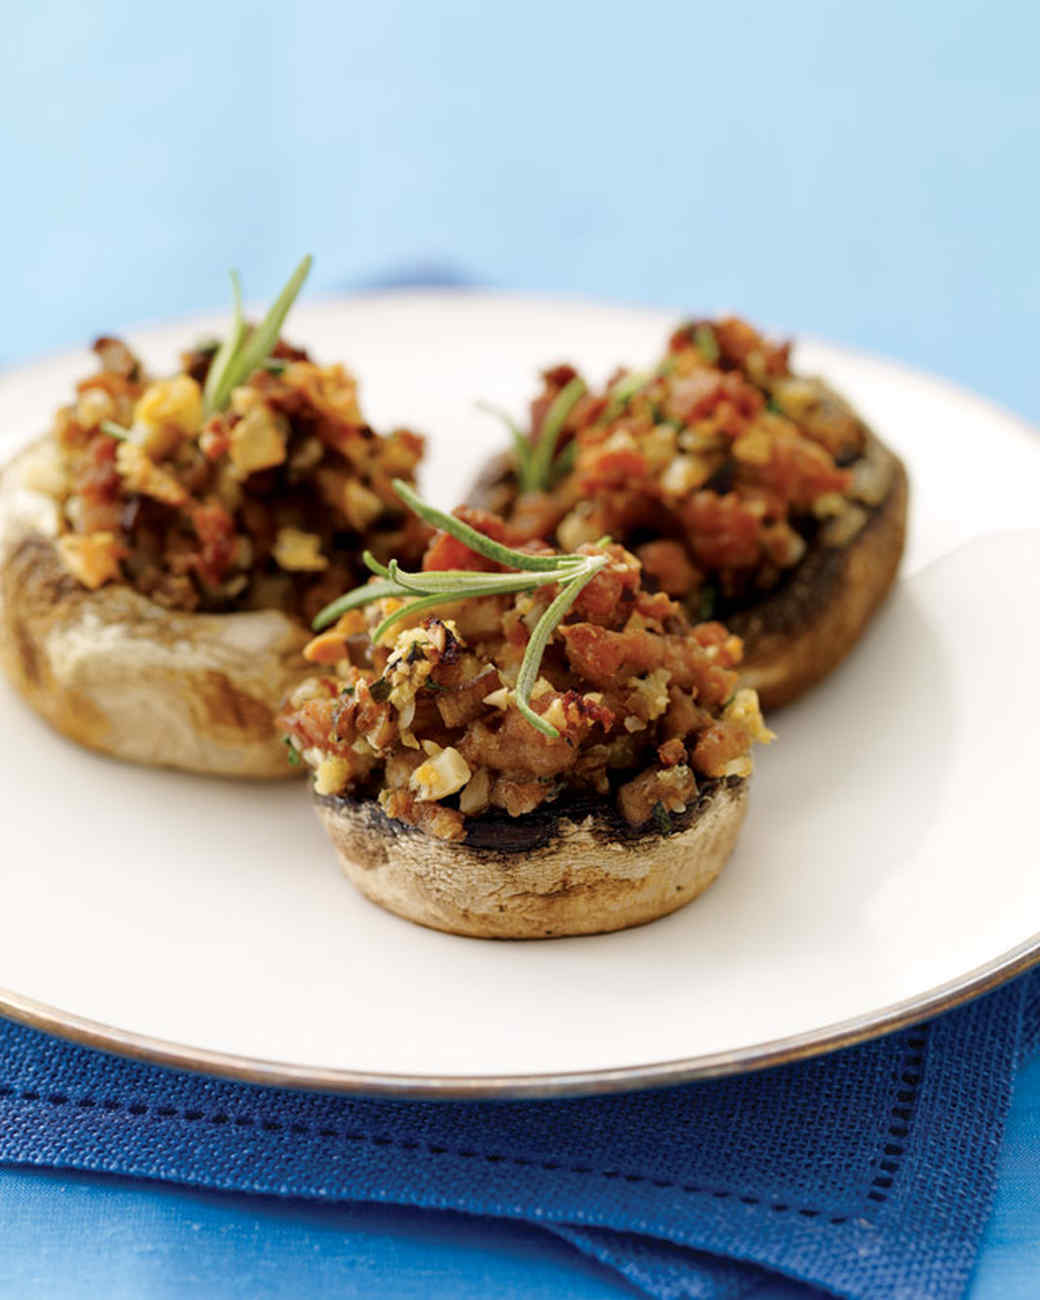 Hazelnut and Turkey-Sausage Stuffed Mushrooms